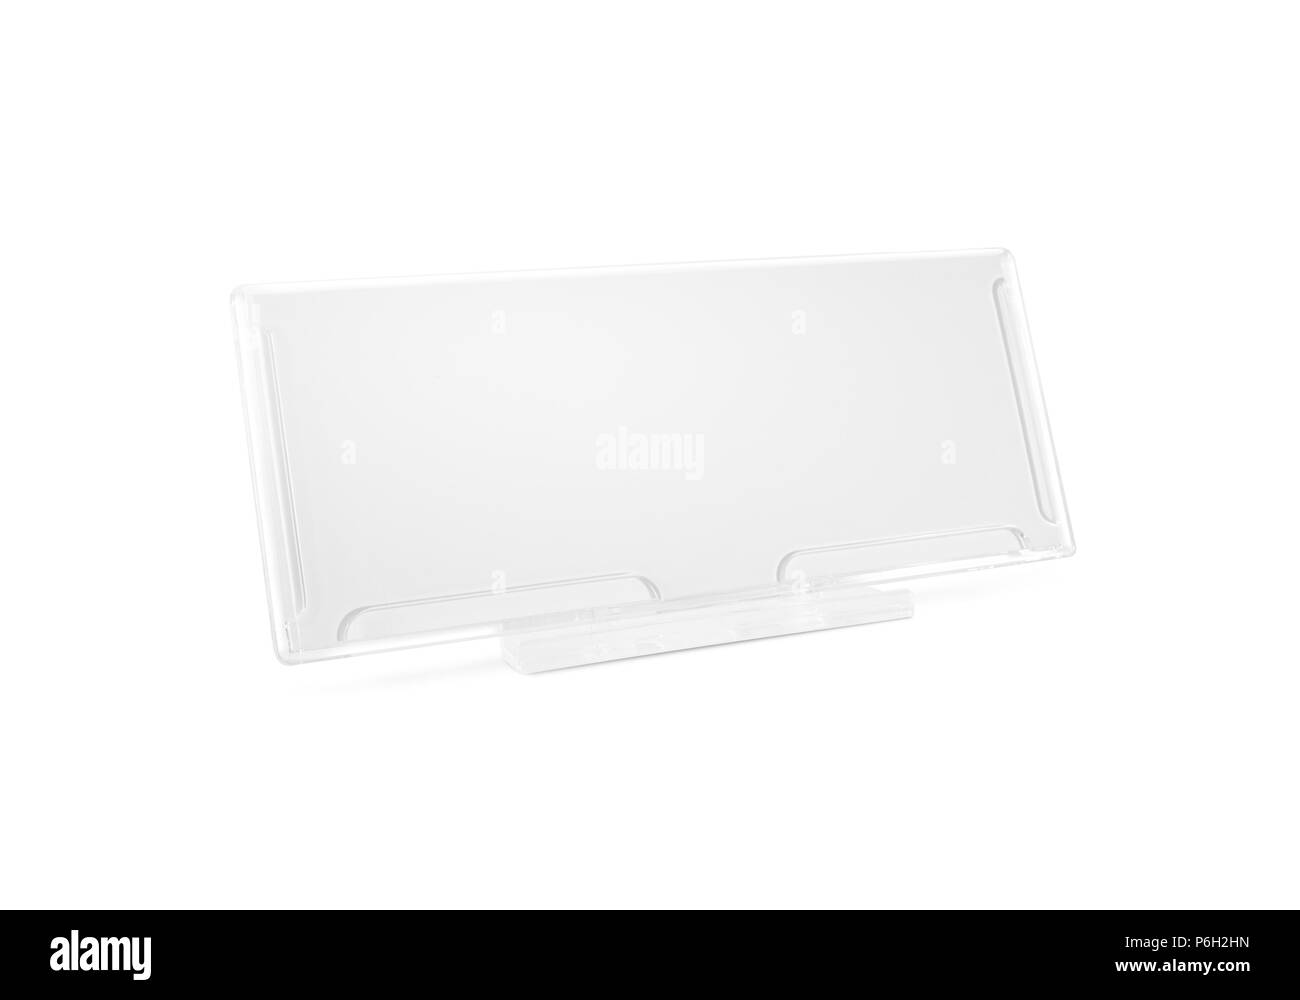 Plastic paper holder mock up stand on desk isolated. Nameplate